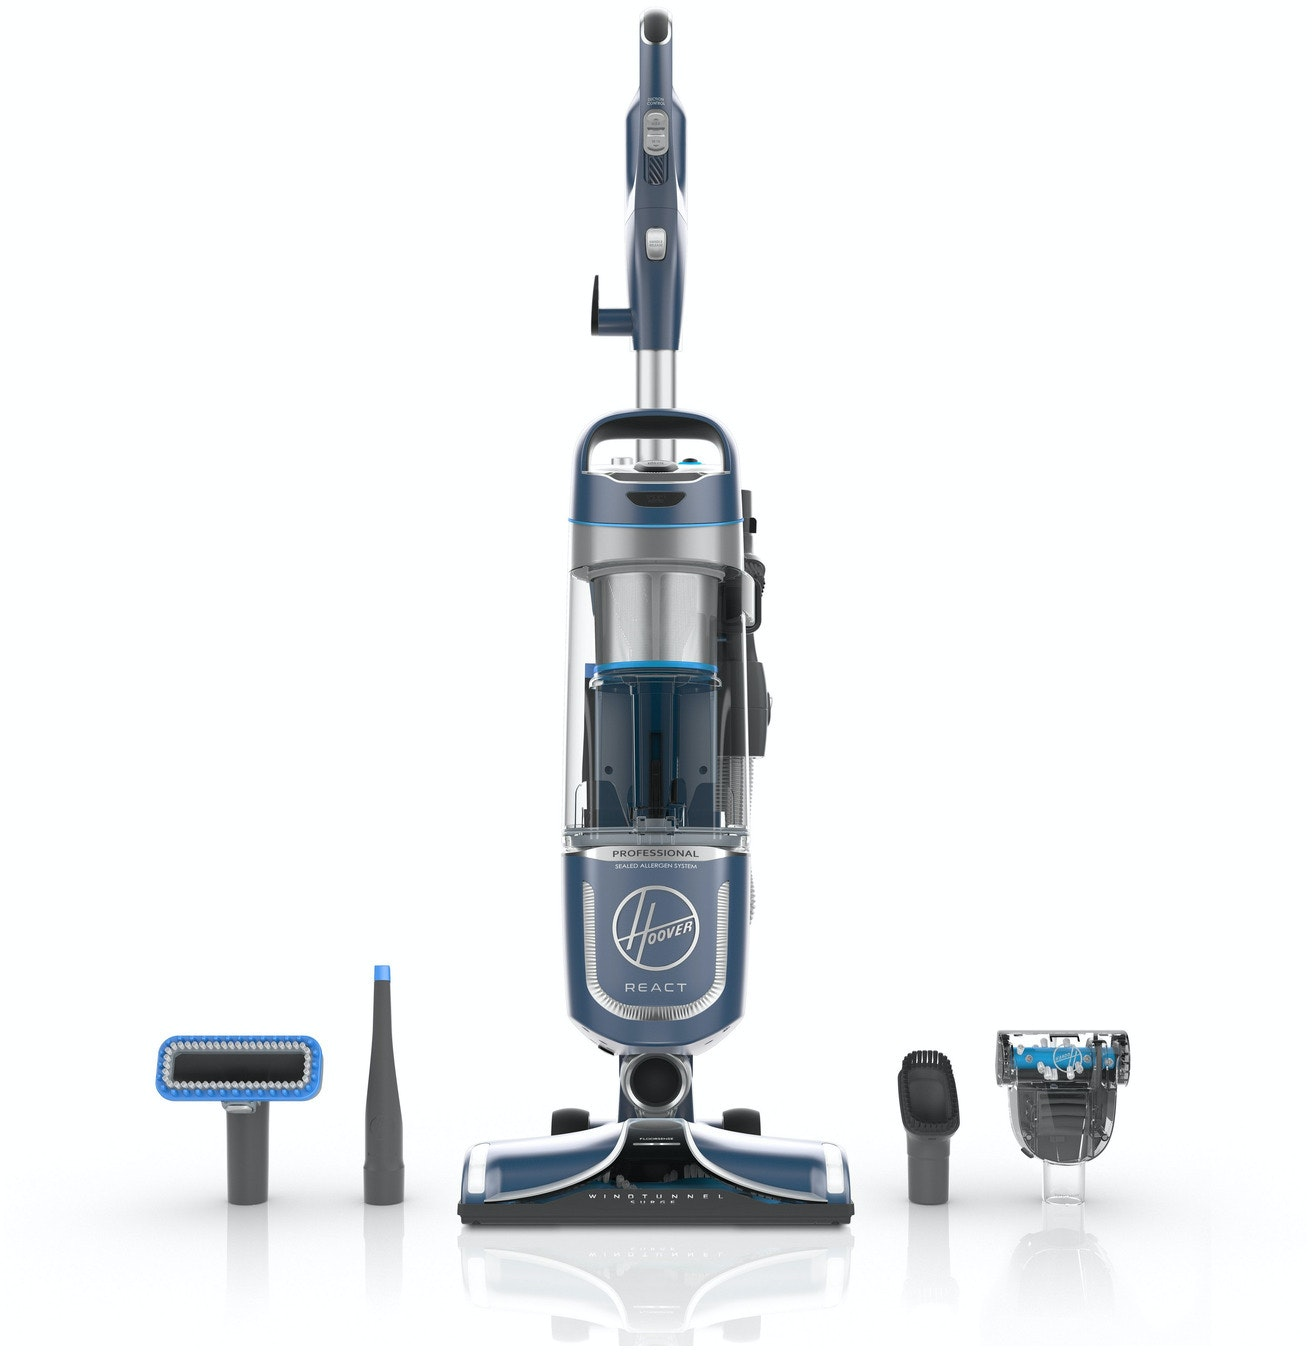 React Professional Upright Vacuum